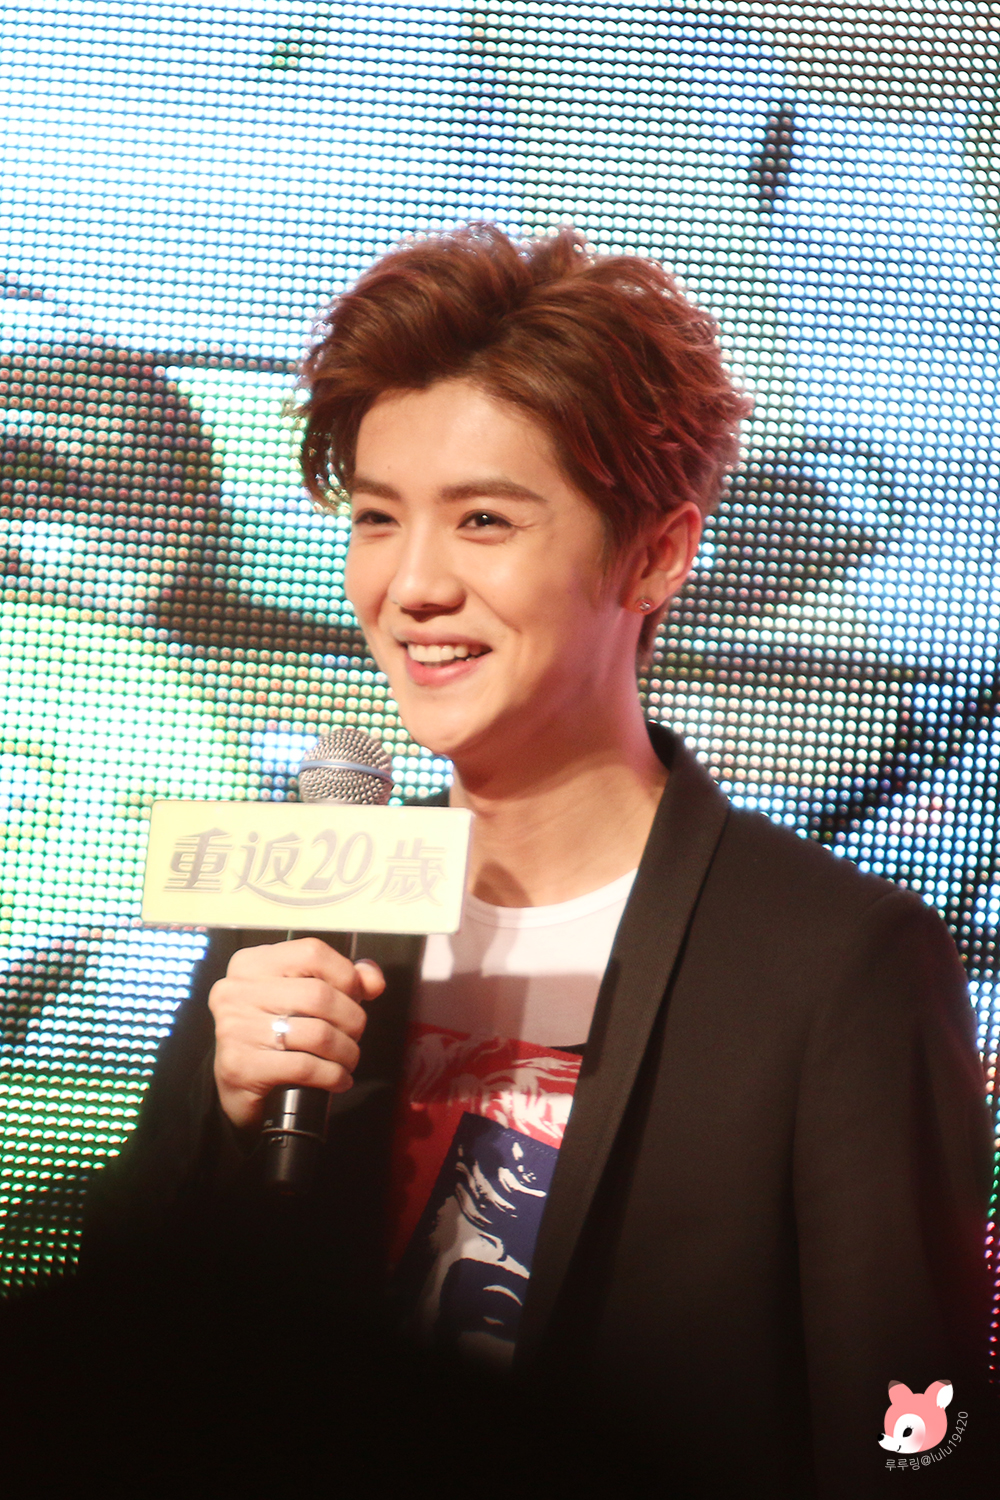 """[FANTAKEN] 150119 """"Back to 20 (Miss Granny)"""" Premiere in Taiwan [100P] 2425424554BE5E4613CAF6"""